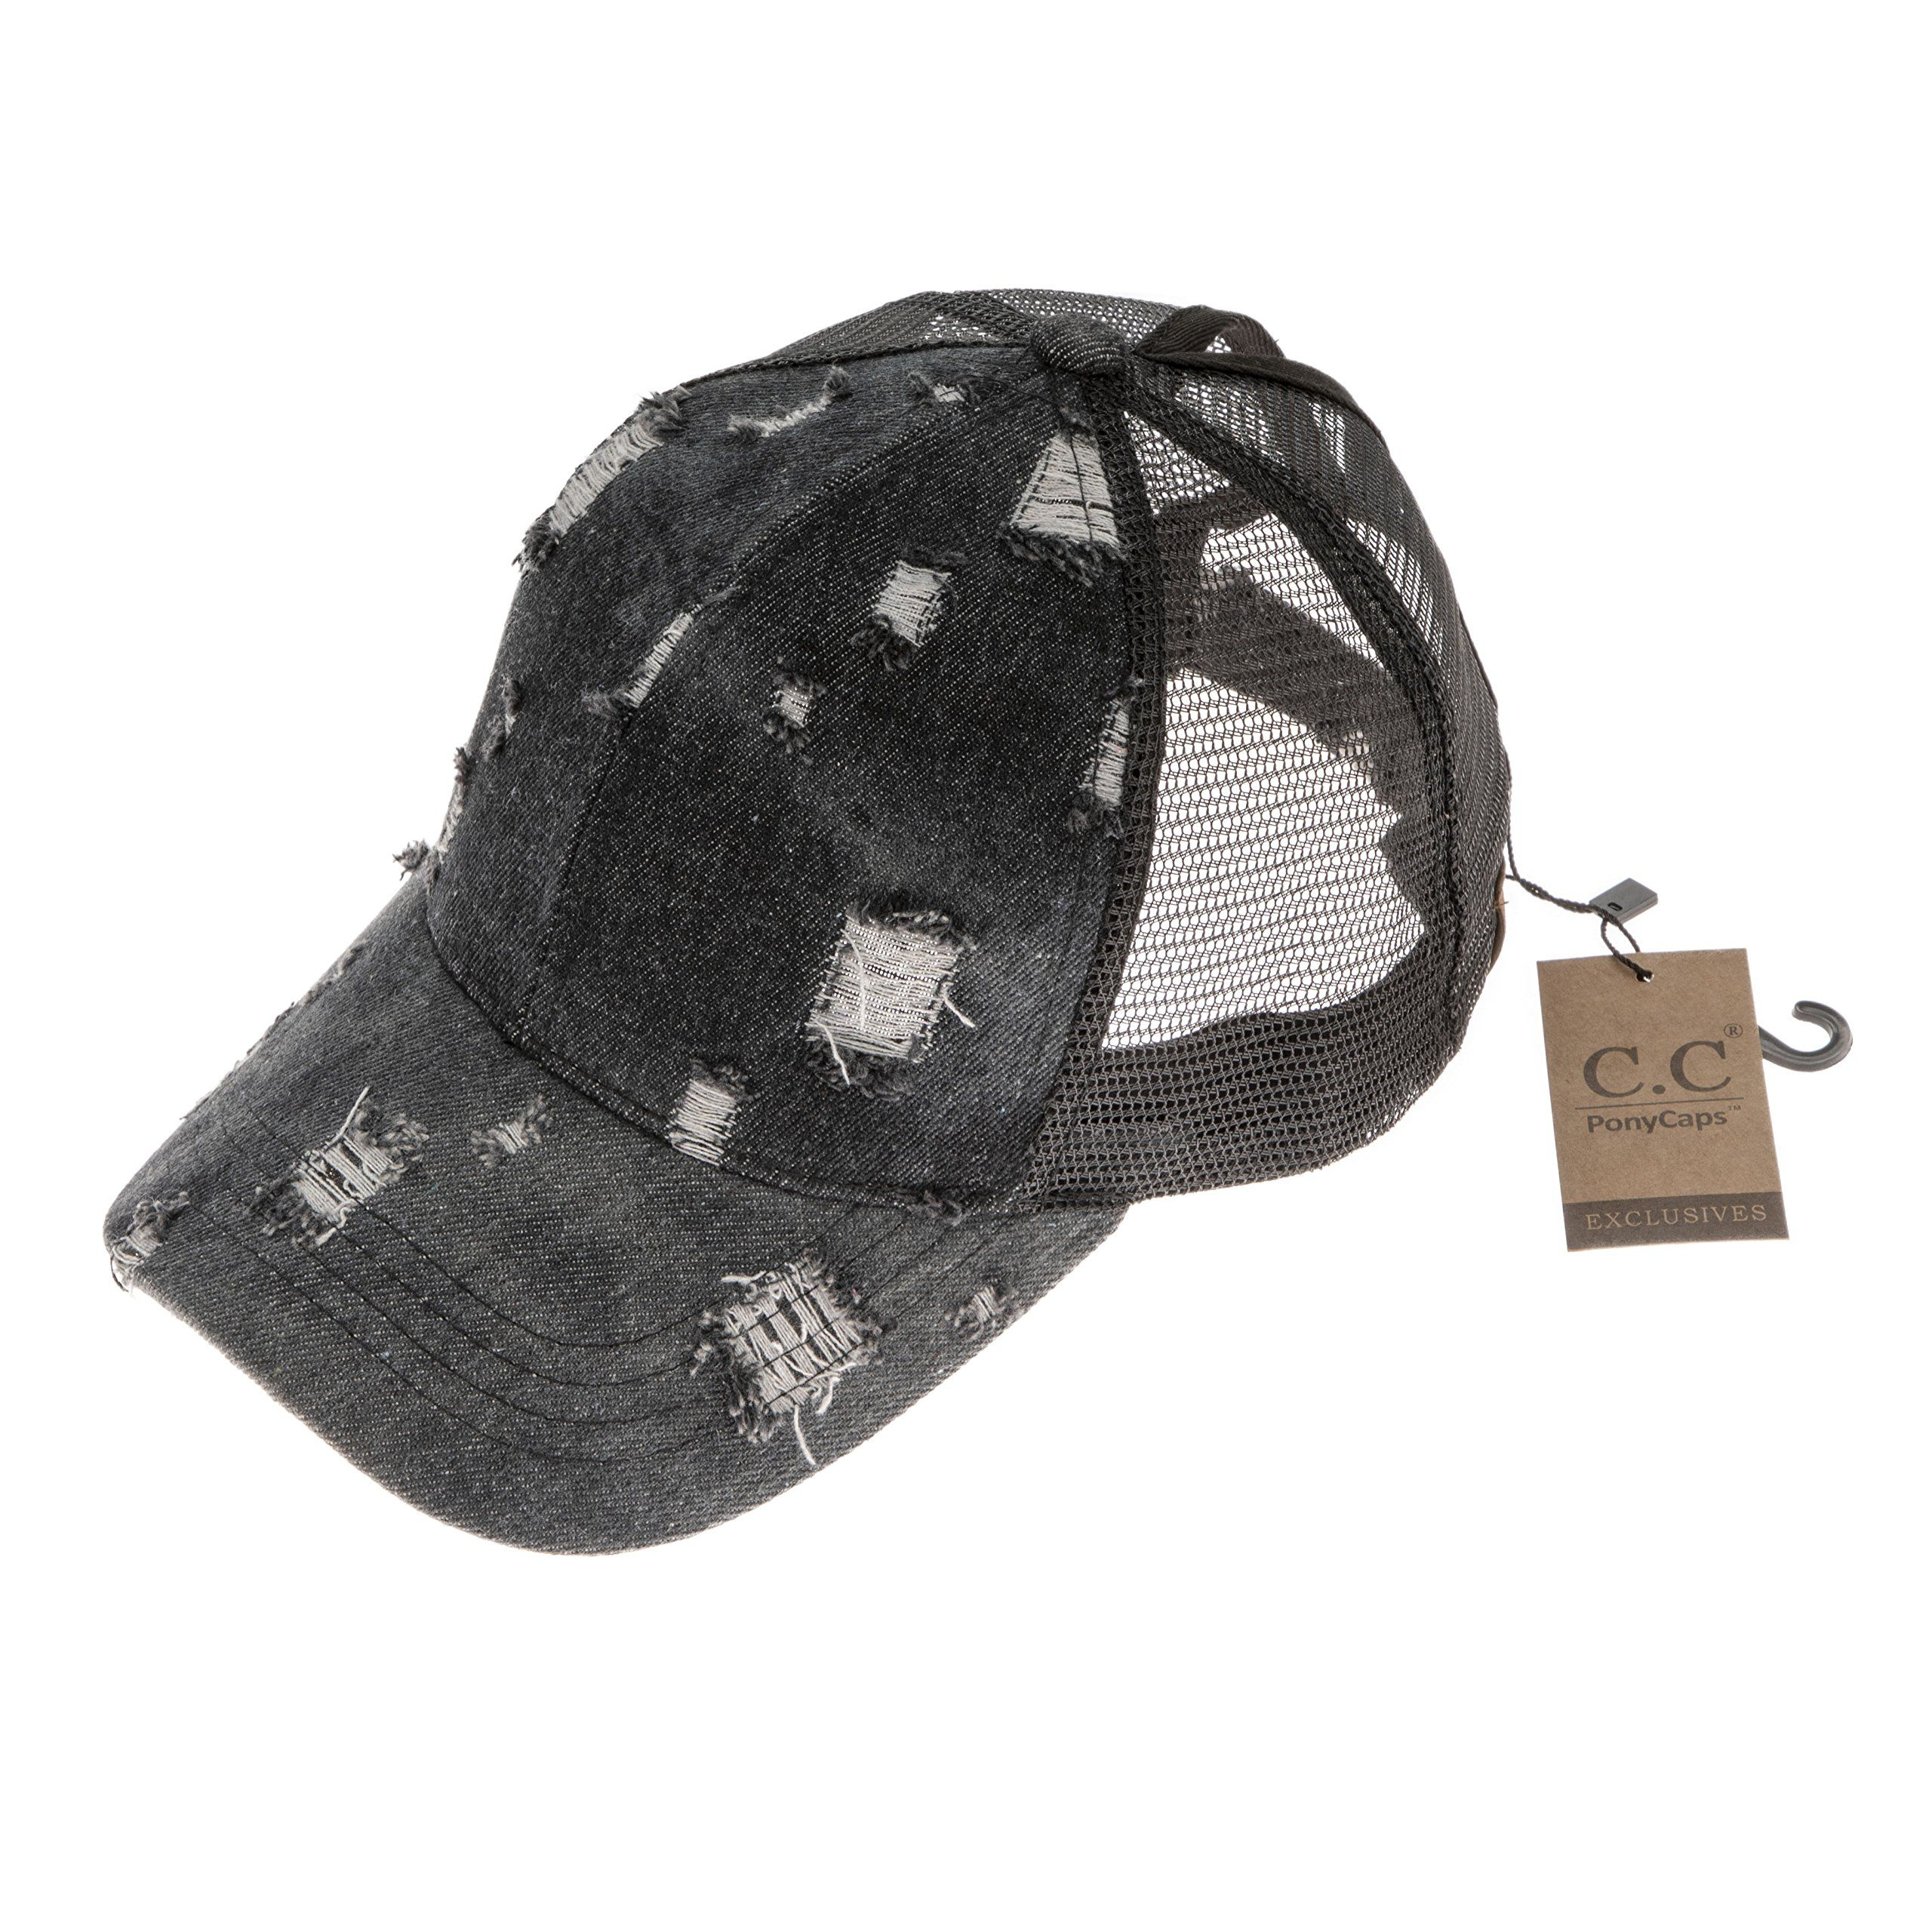 Hatsandscarf C.C Messy Buns Damaged Denim Fabric Trucker Hat with Ponytail  Baseball Cap BT8 Black    Click image to review more details. f48f1e21ec71